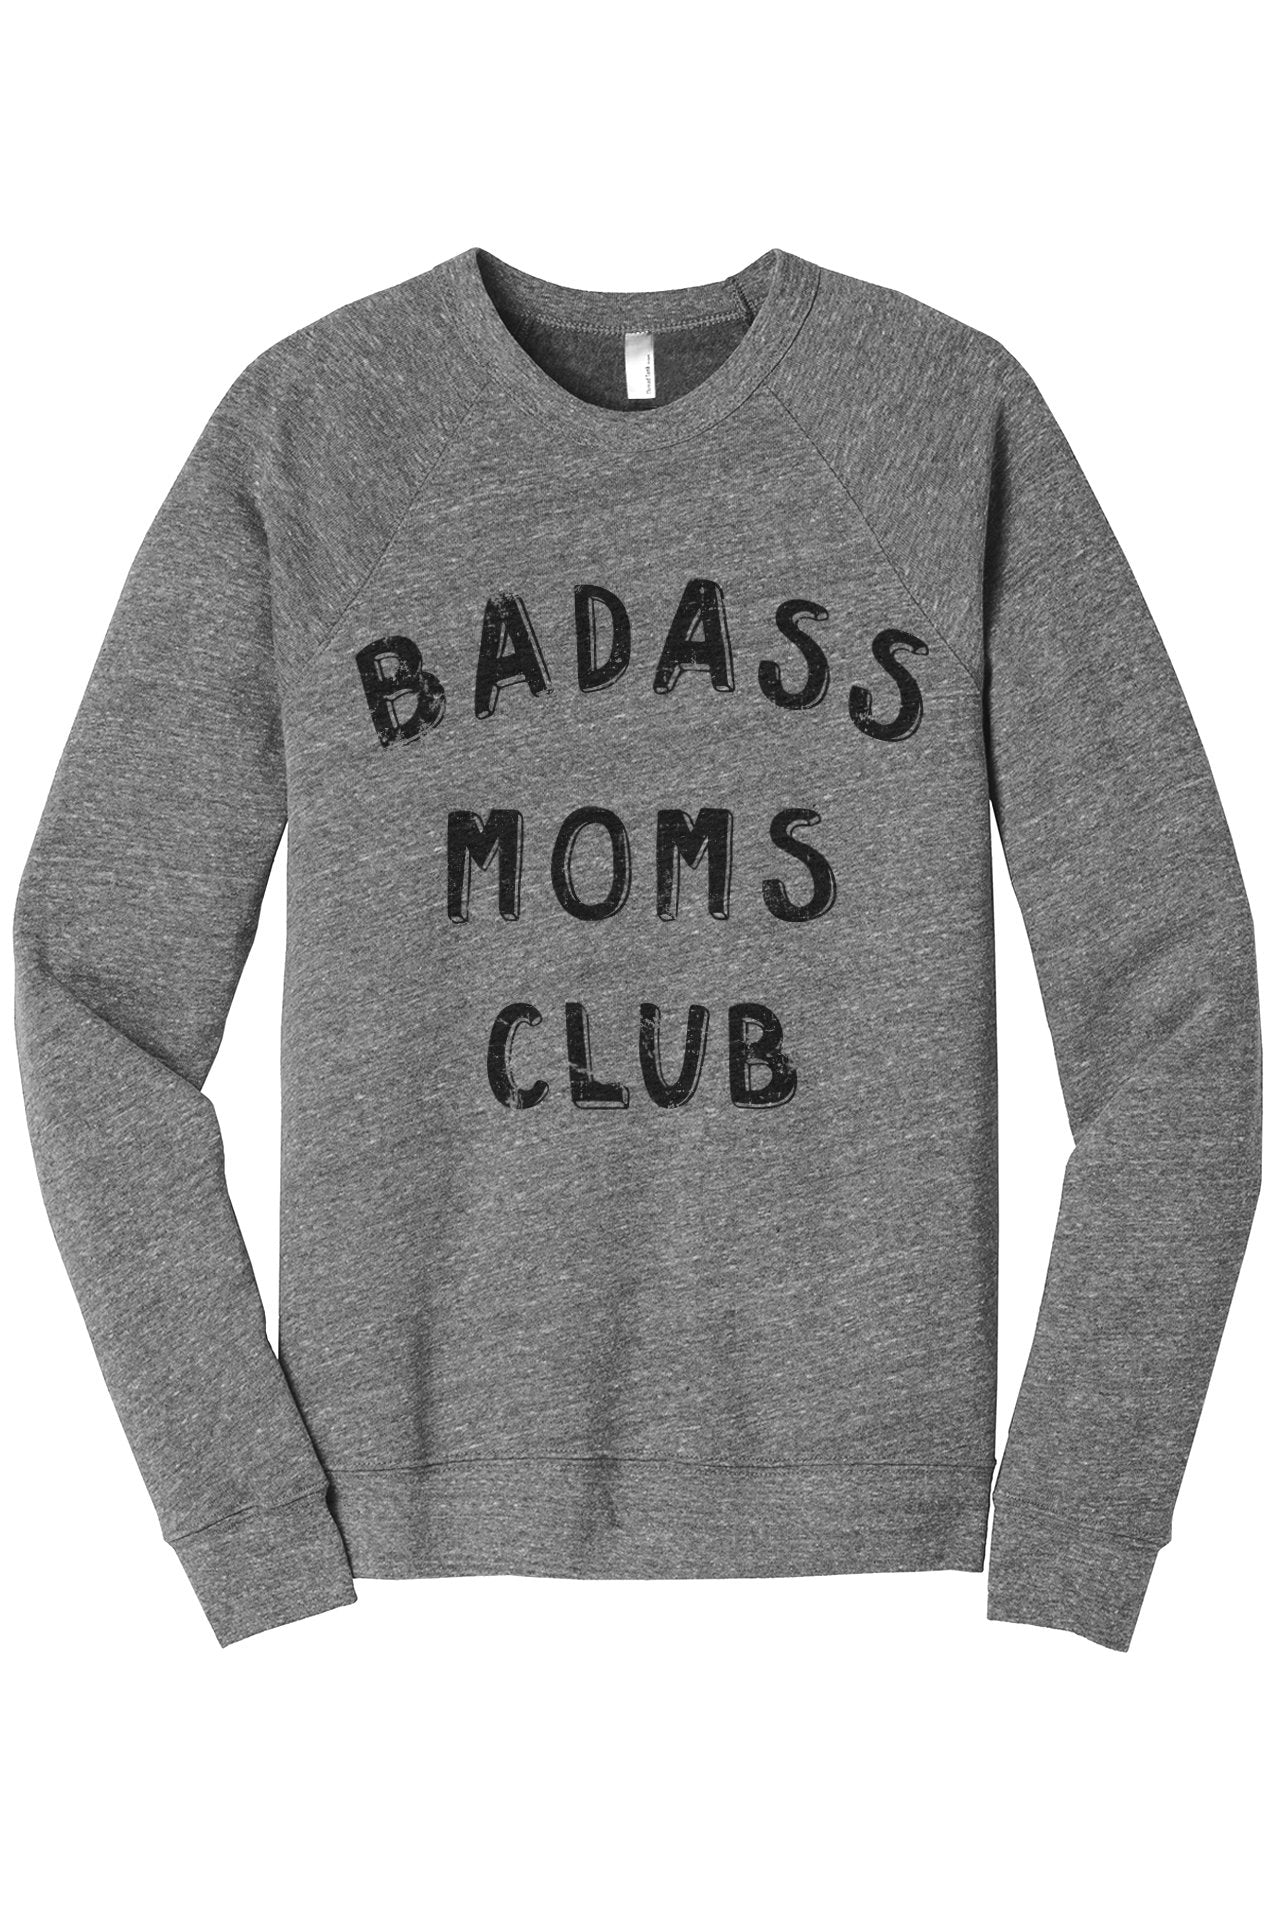 Badass MOMS Club - Thread Tank | Stories You Can Wear | T-Shirts, Tank Tops and Sweatshirts